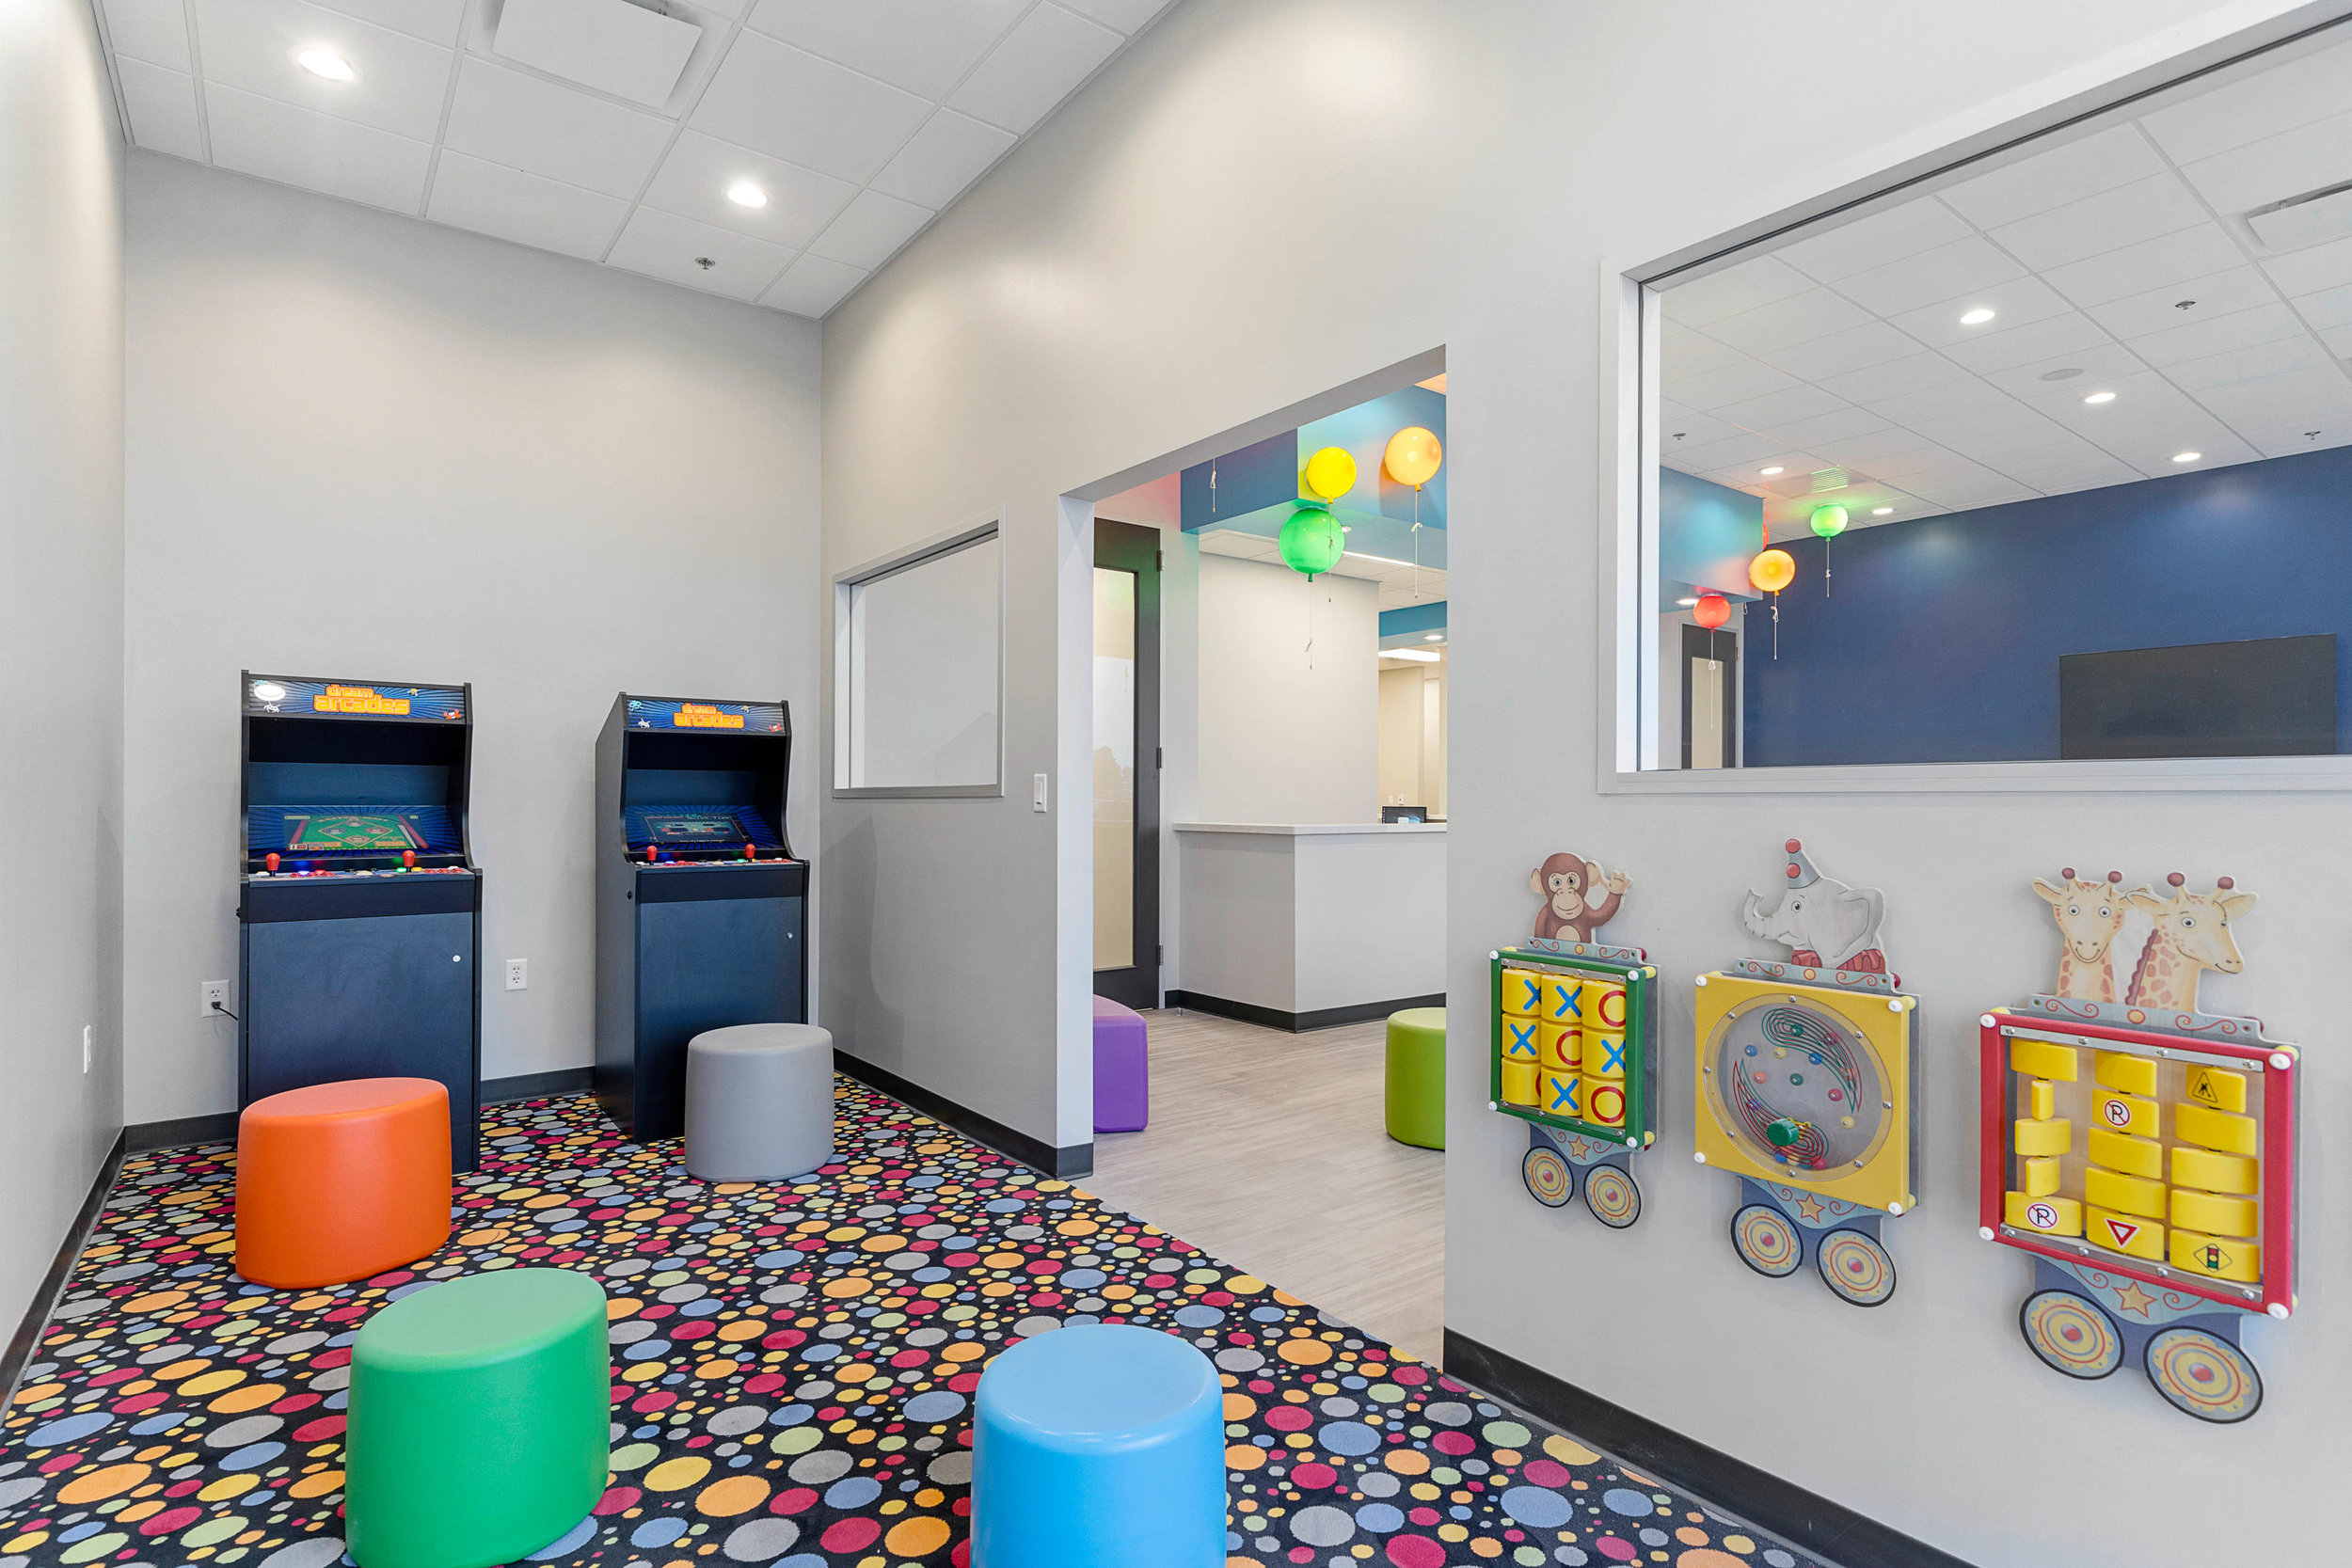 PEDIATRIC DENTIST PLAYROOM HOUSTON TEXAS 77022.jpg